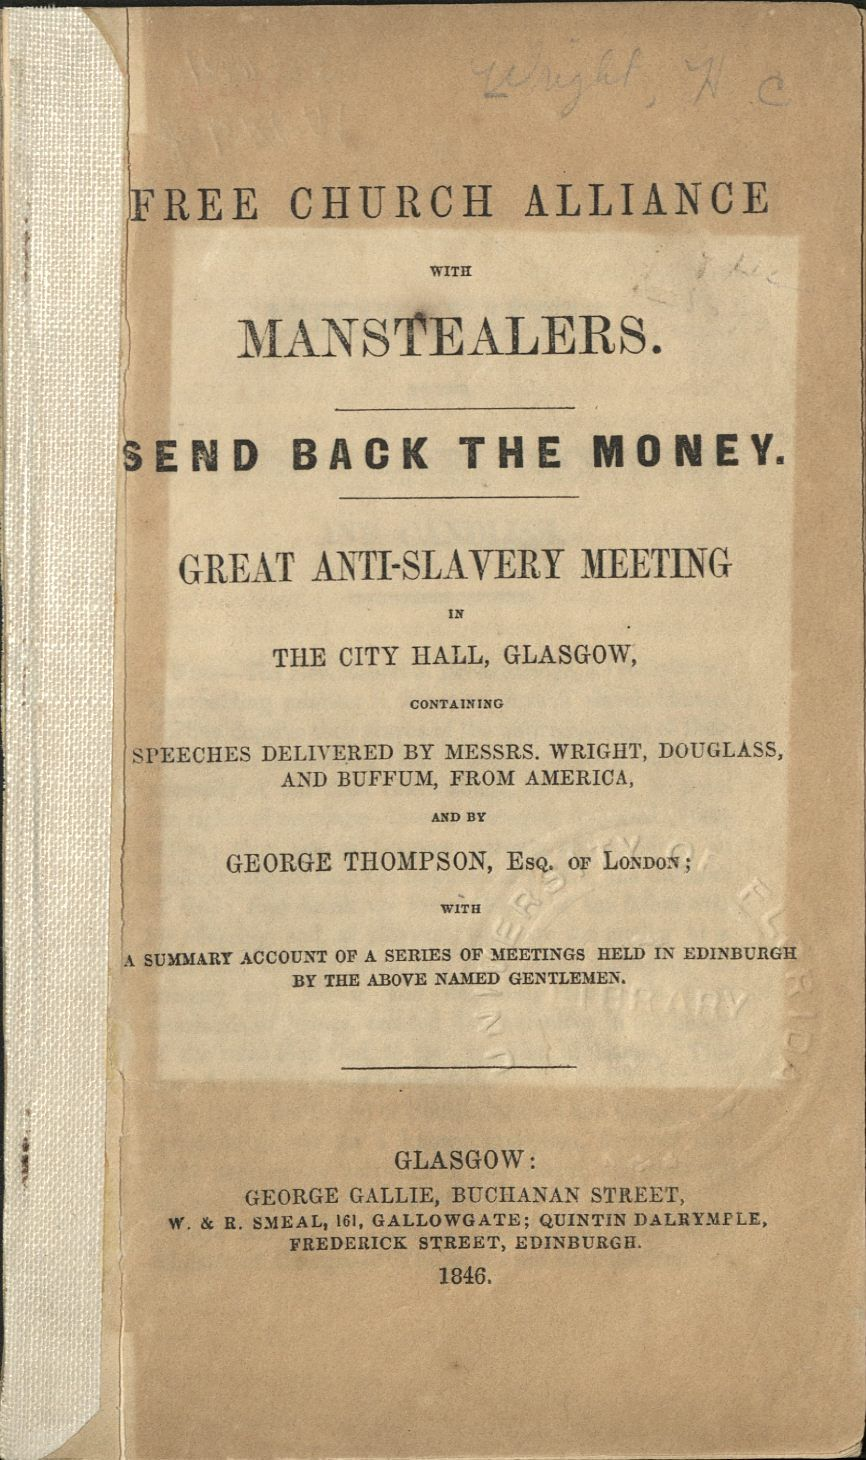 Image of Free Church Alliance with the Manstealers pamphlet